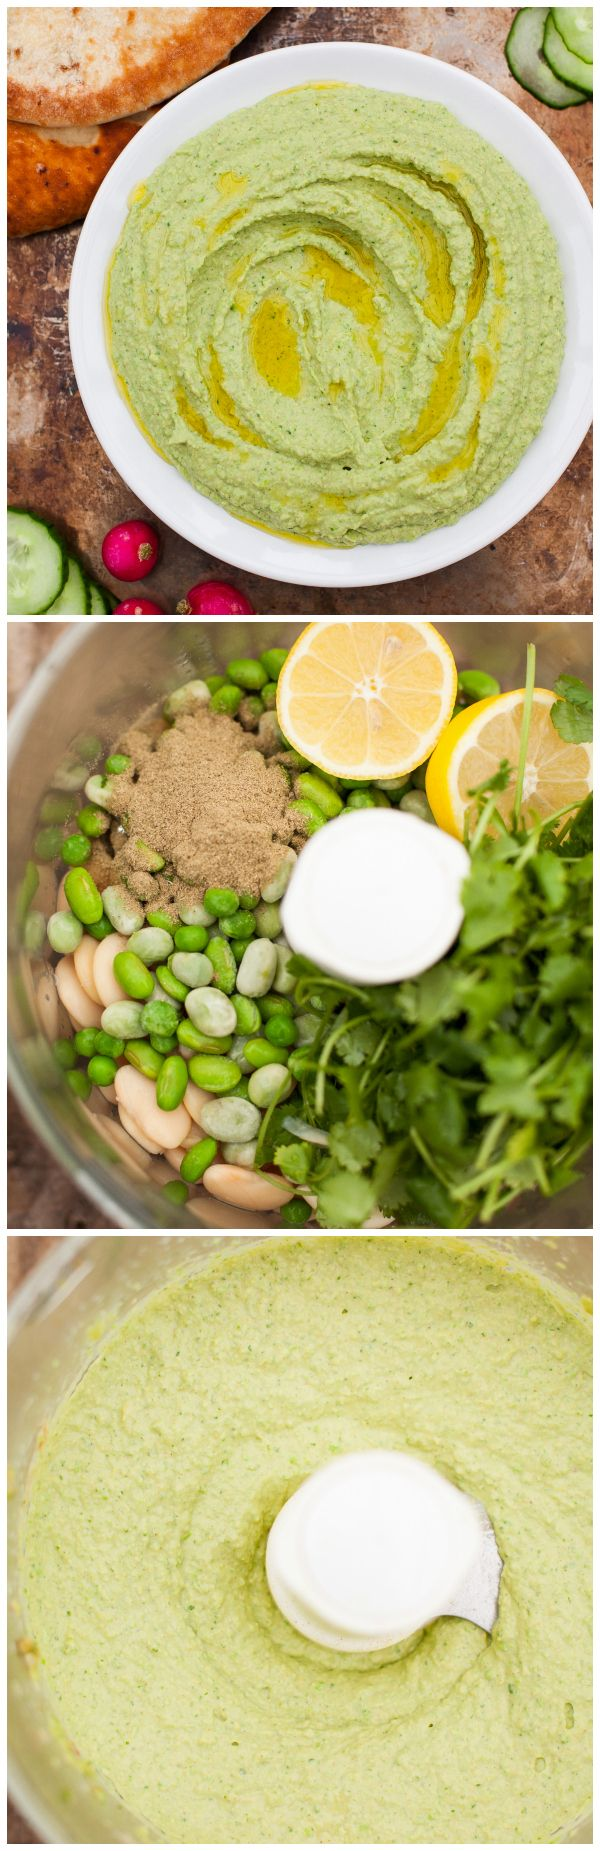 Lemony Edamame and Butter Bean Hummus